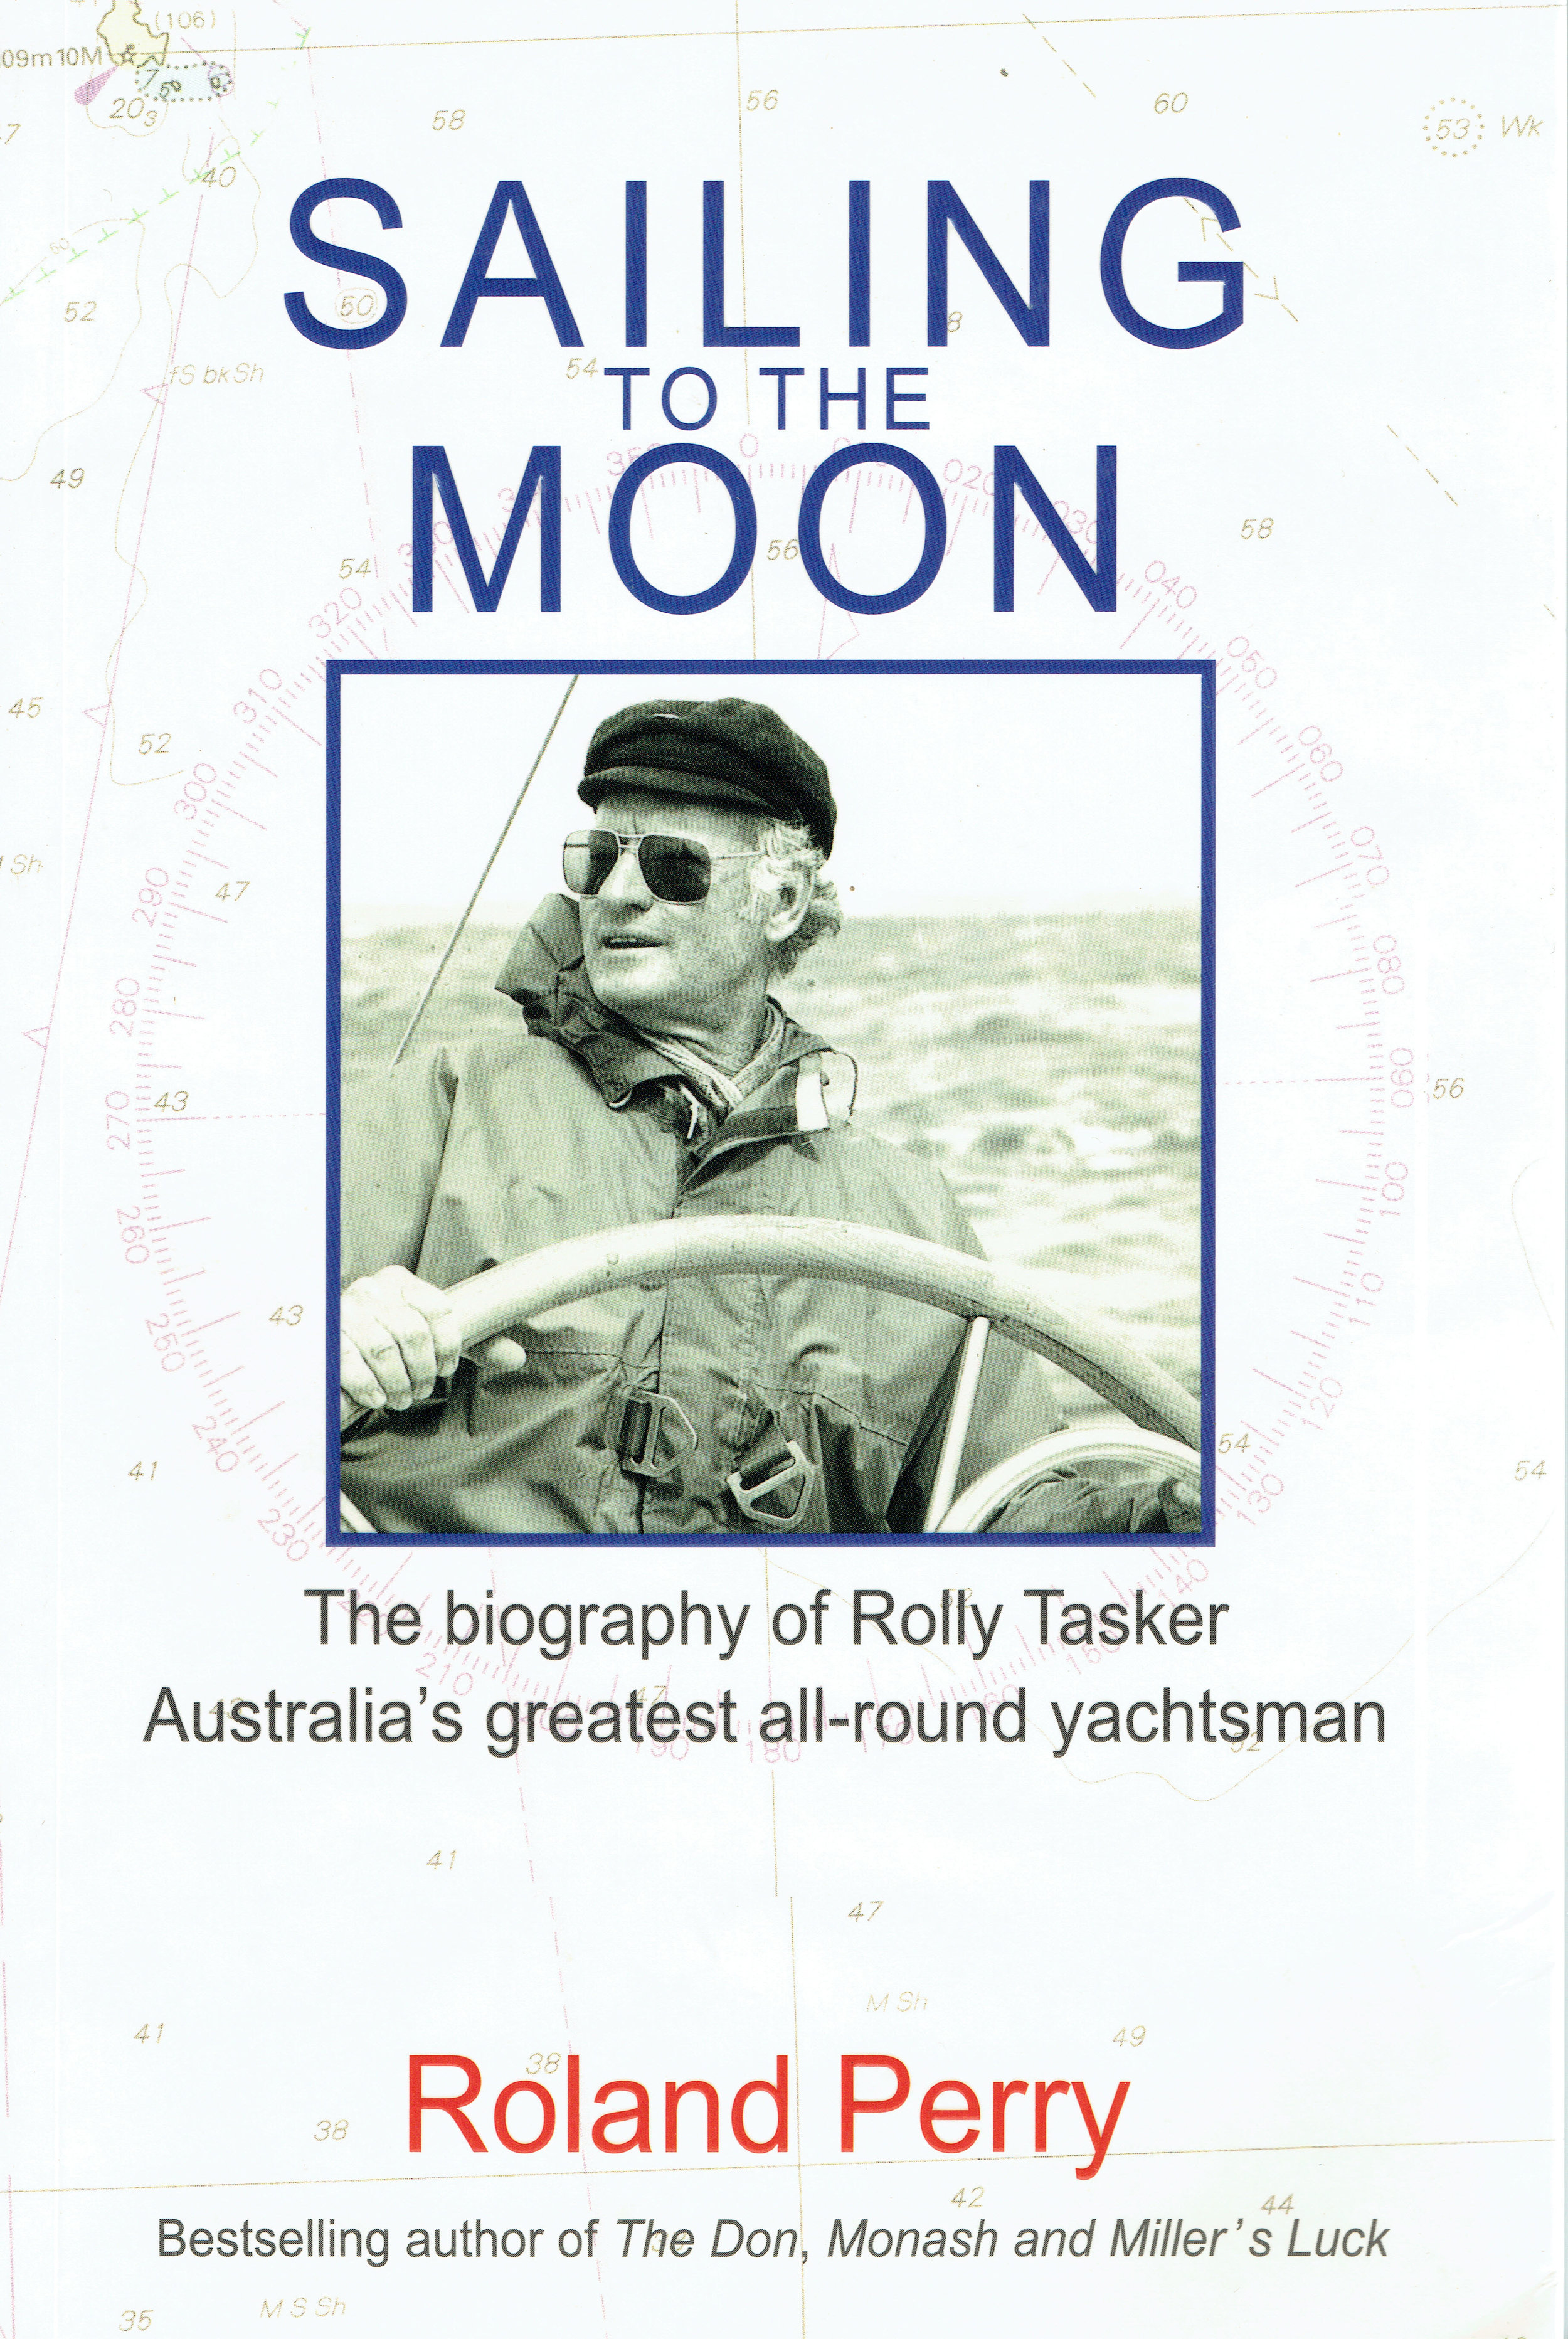 Sailing to the moon : the biography of Rolly Tasker, Australia's greatest all-round yachtsman   Roland Perry.